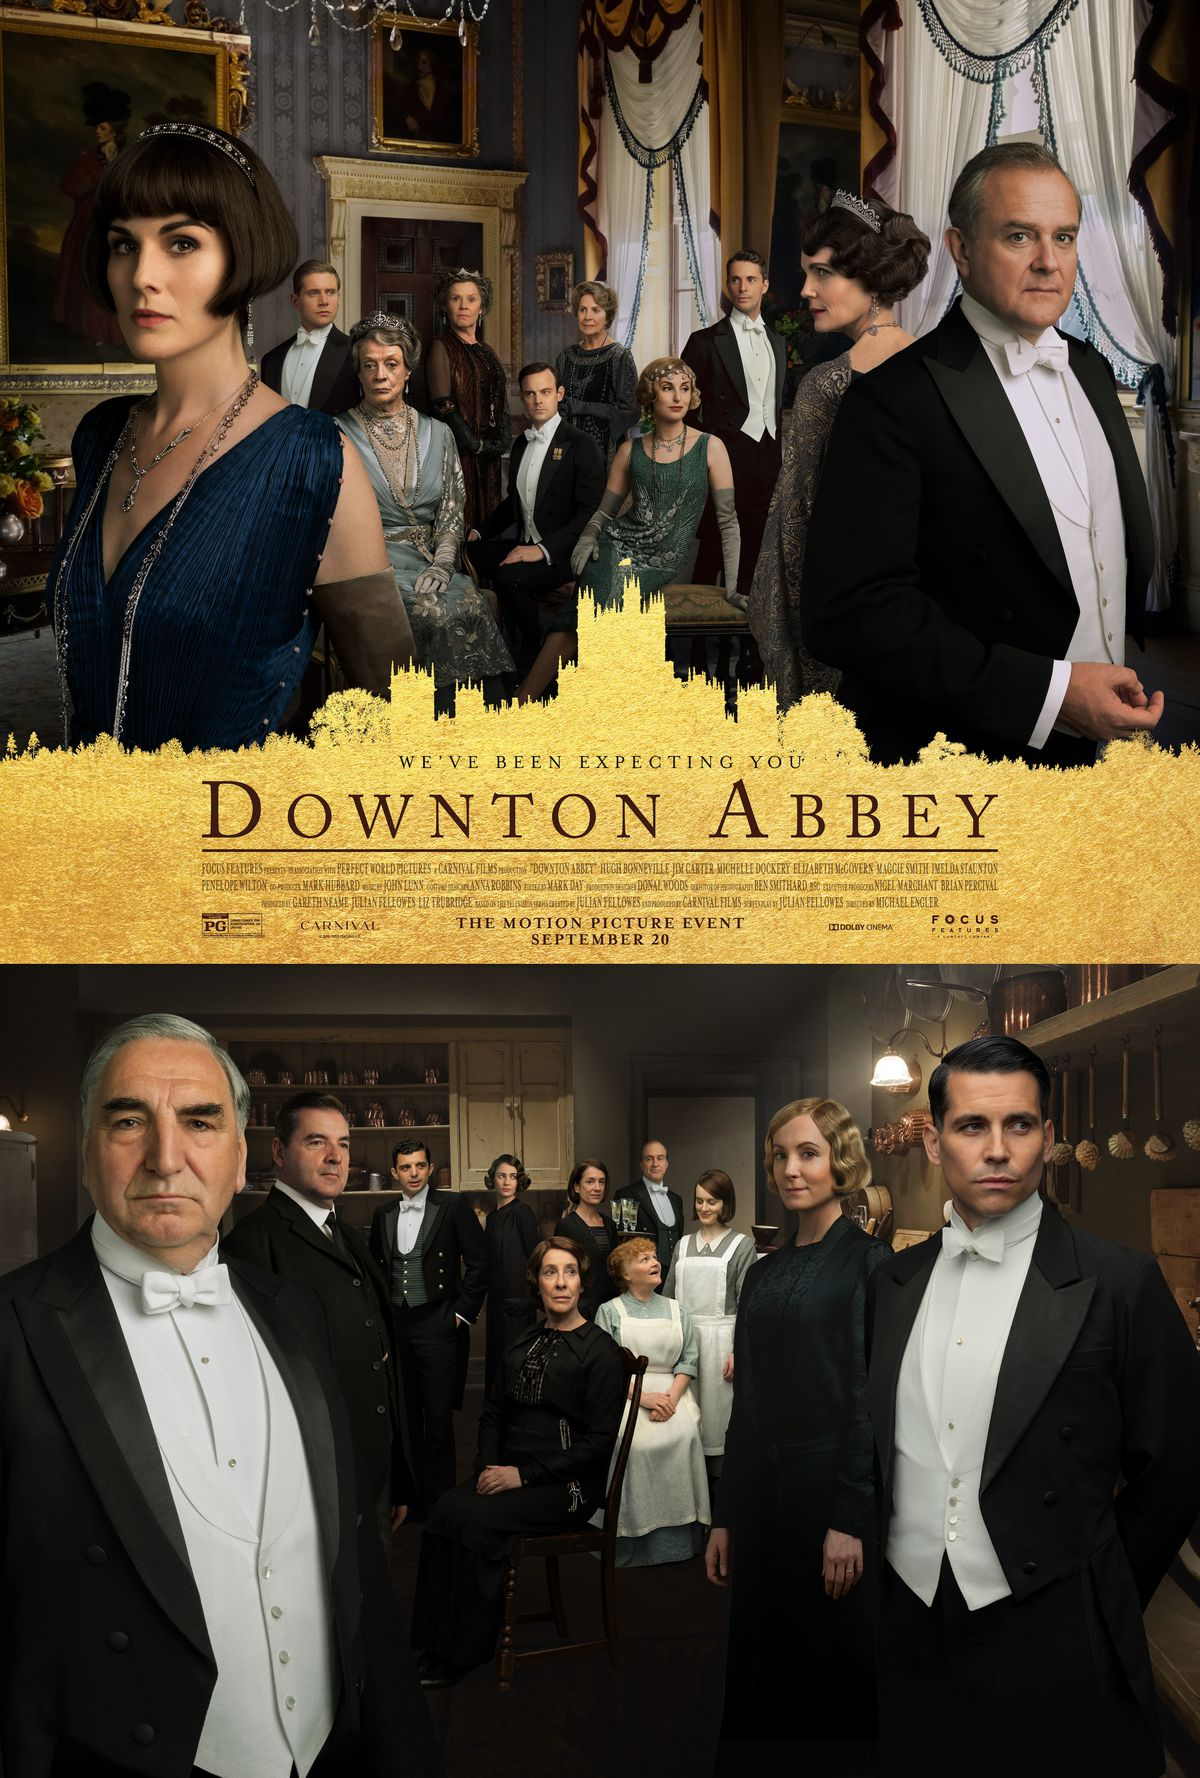 The Downton Abbey movie poster shows the servants in the lower half of the poster and the gentry in the upper half.